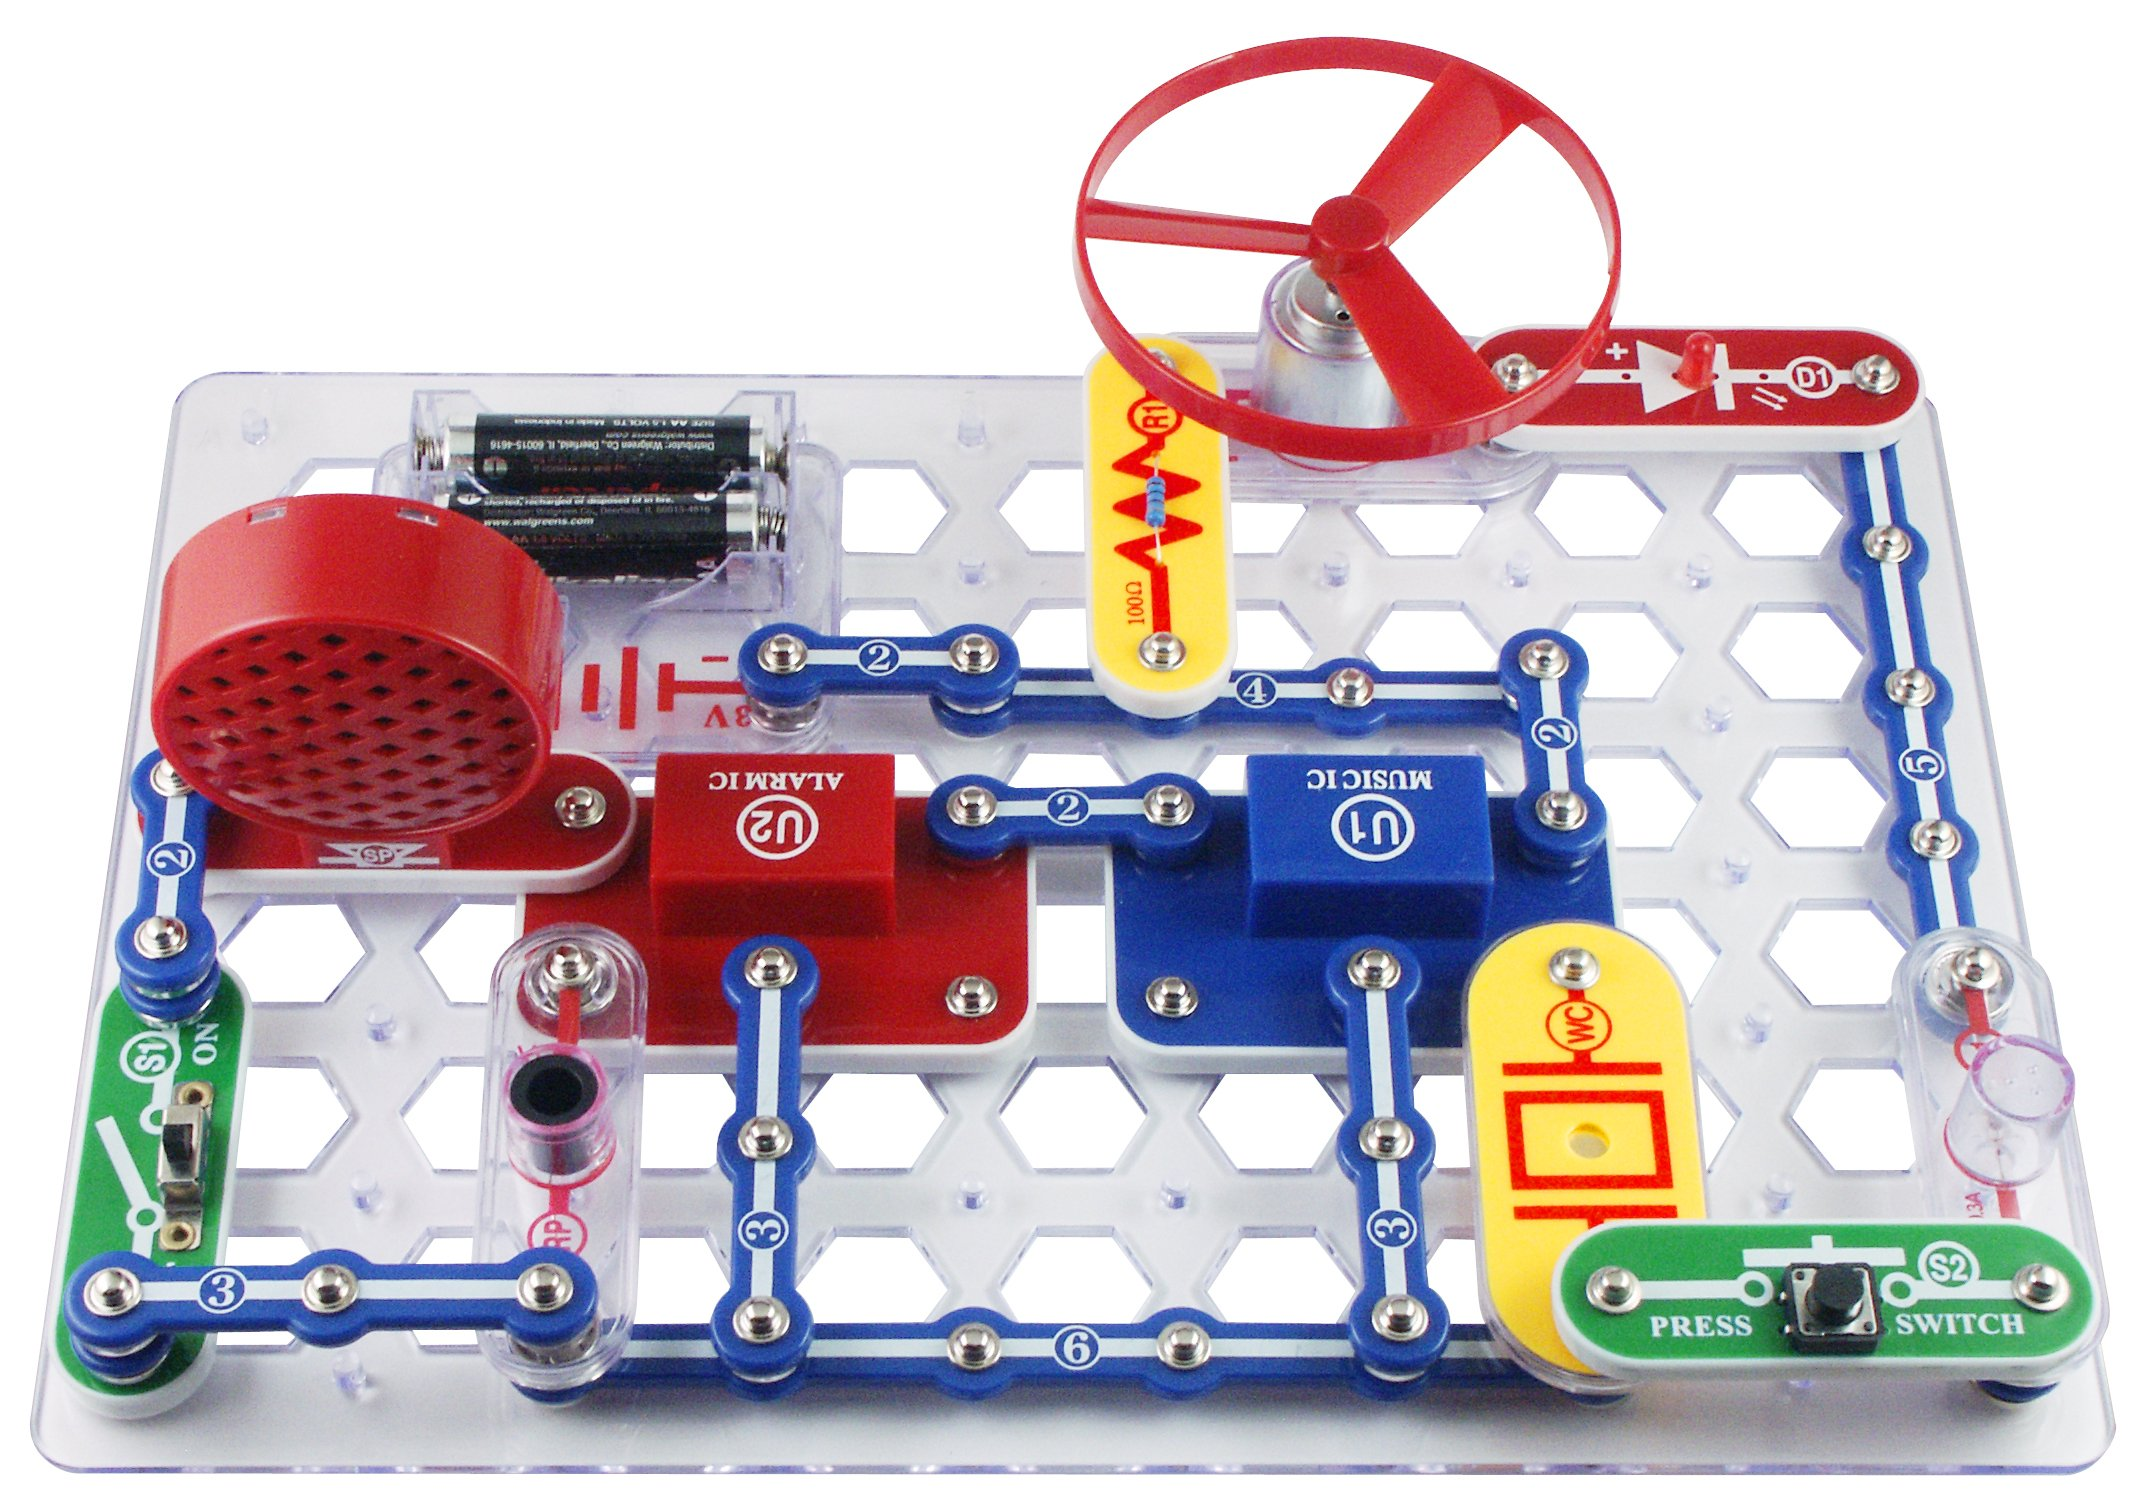 Snap Circuits Jr. SC-100 Electronics Exploration Kit | Over 100 STEM Projects | 4-Color Project Manual | 30 Snap Modules | Unlimited Fun by Snap Circuits (Image #3)